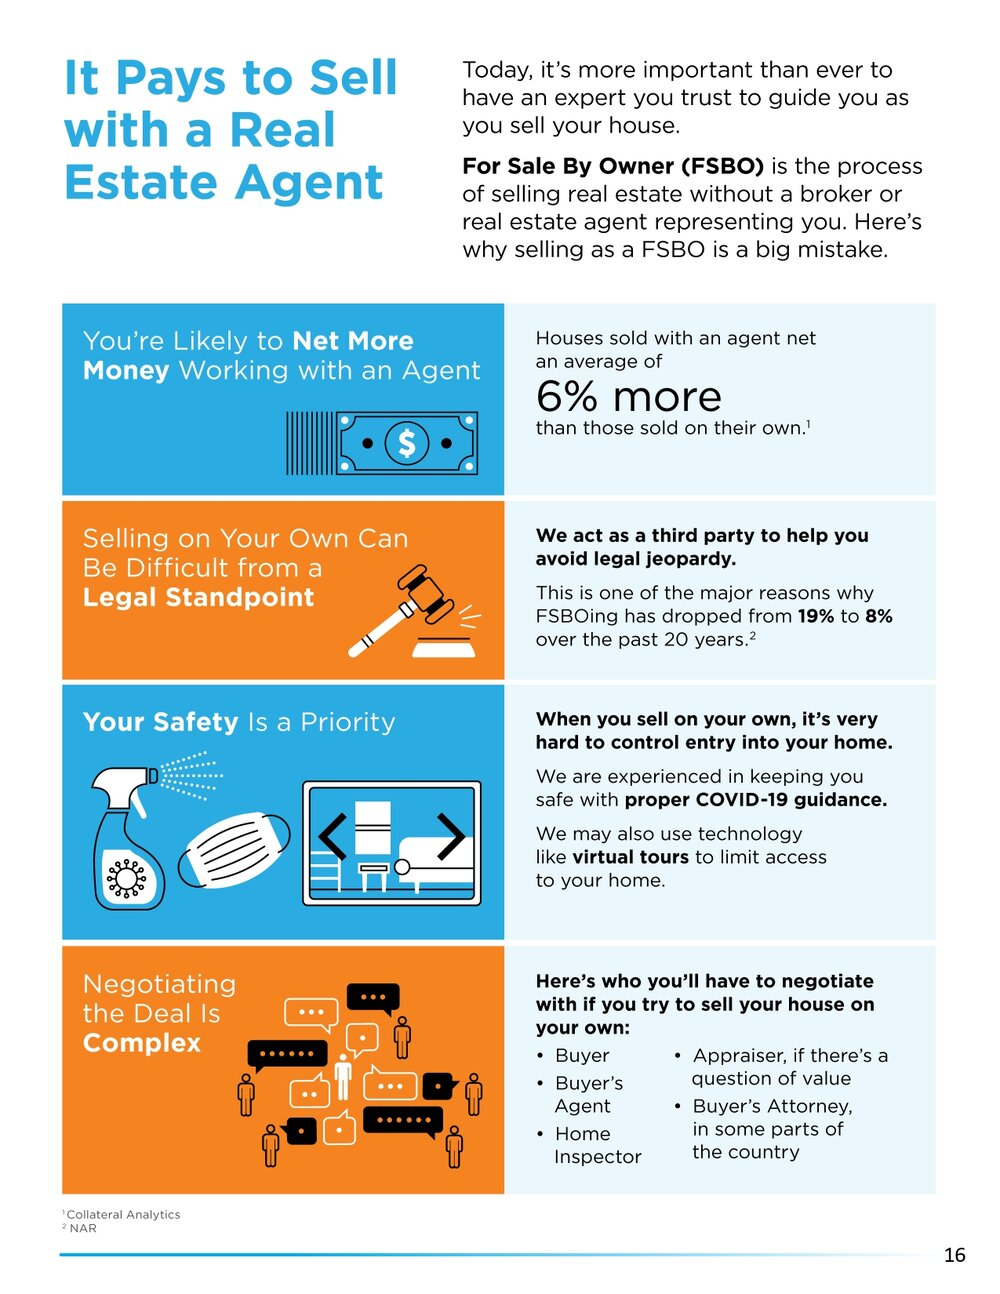 SellingYourHouseSpring2021_page-0016.jpg